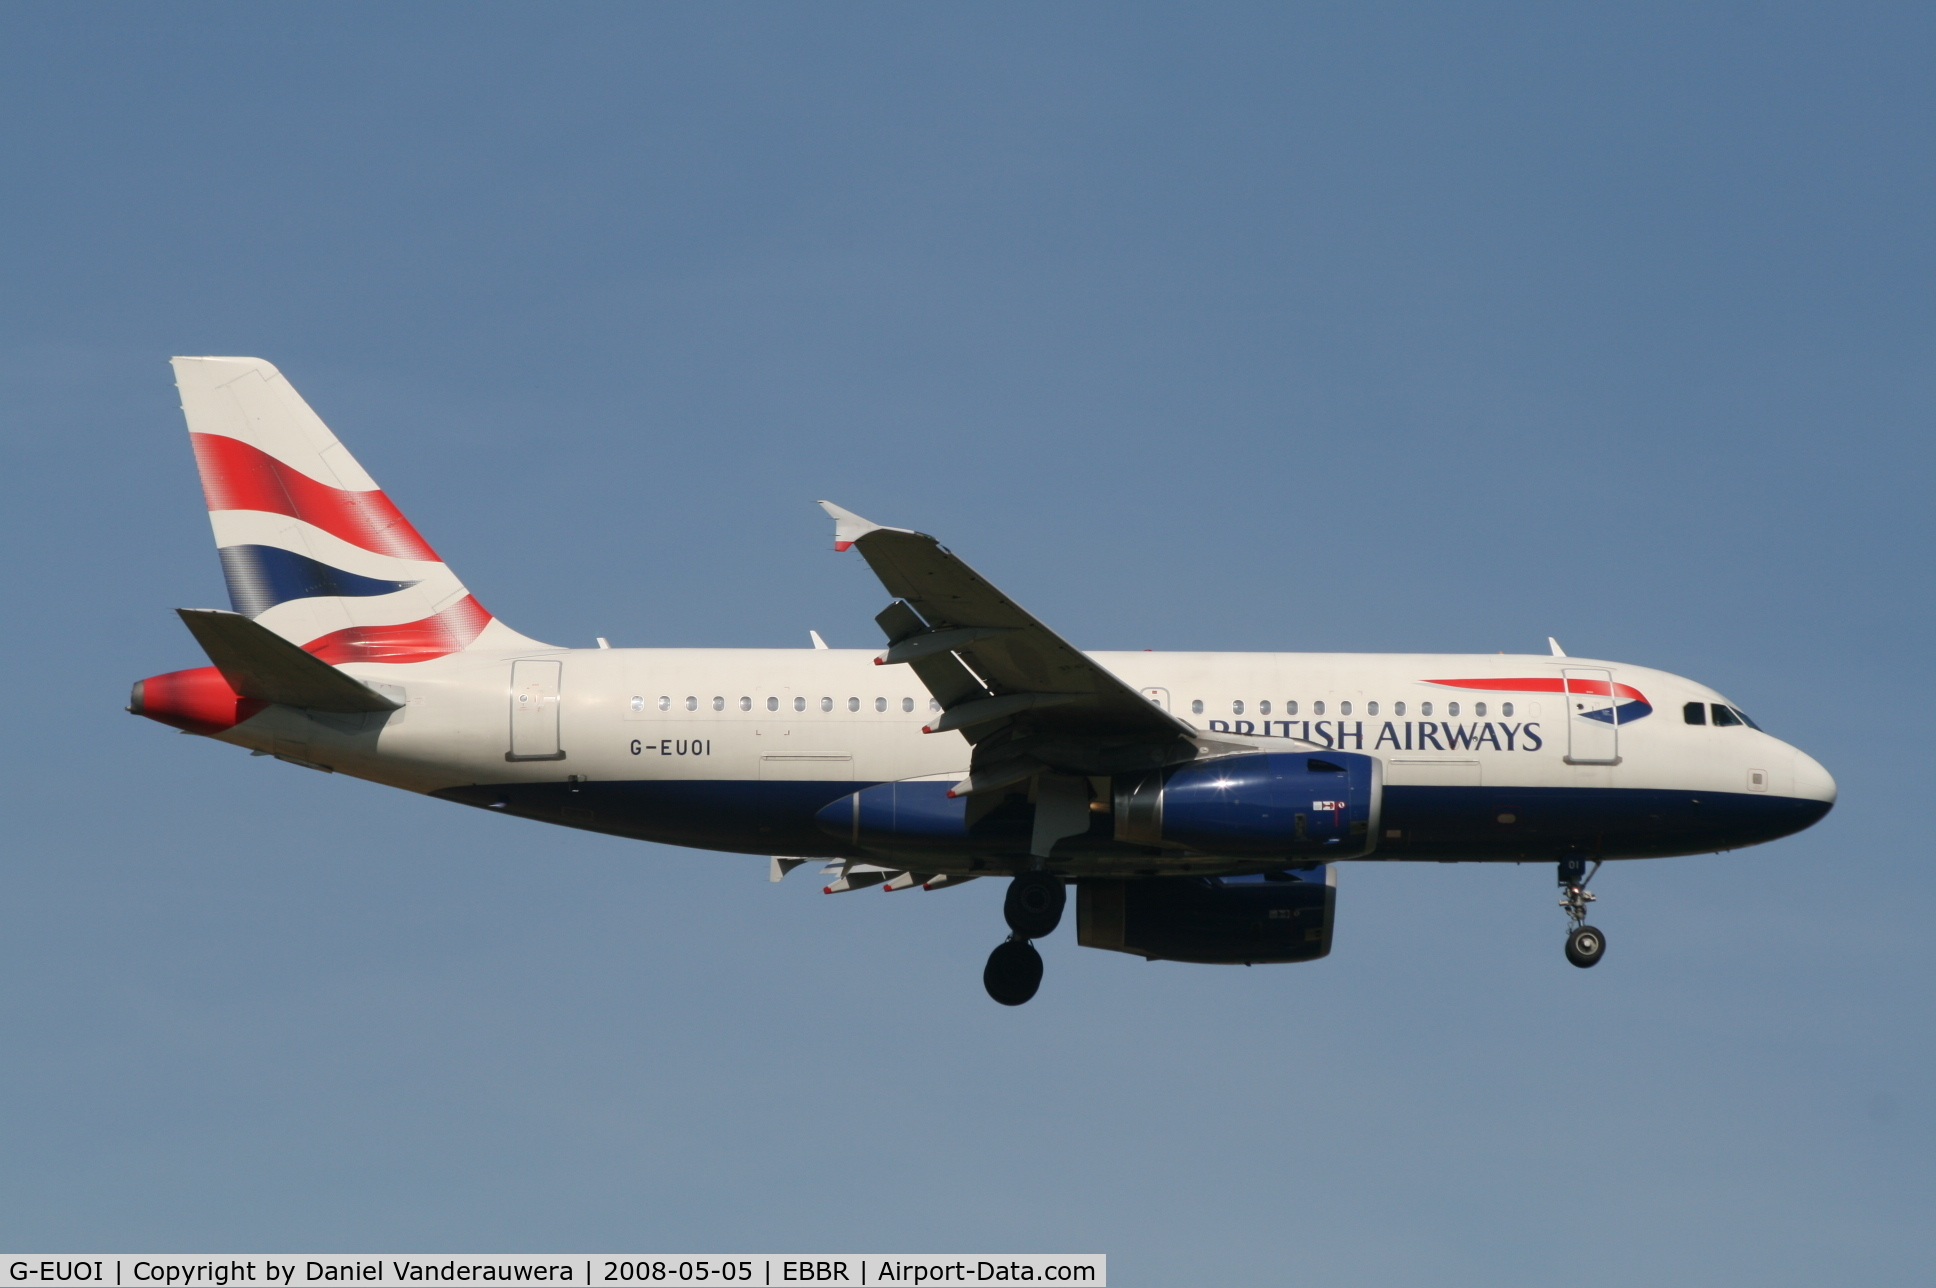 G-EUOI, 2001 Airbus A319-131 C/N 1606, arrival of flight BA392 to rwy 02